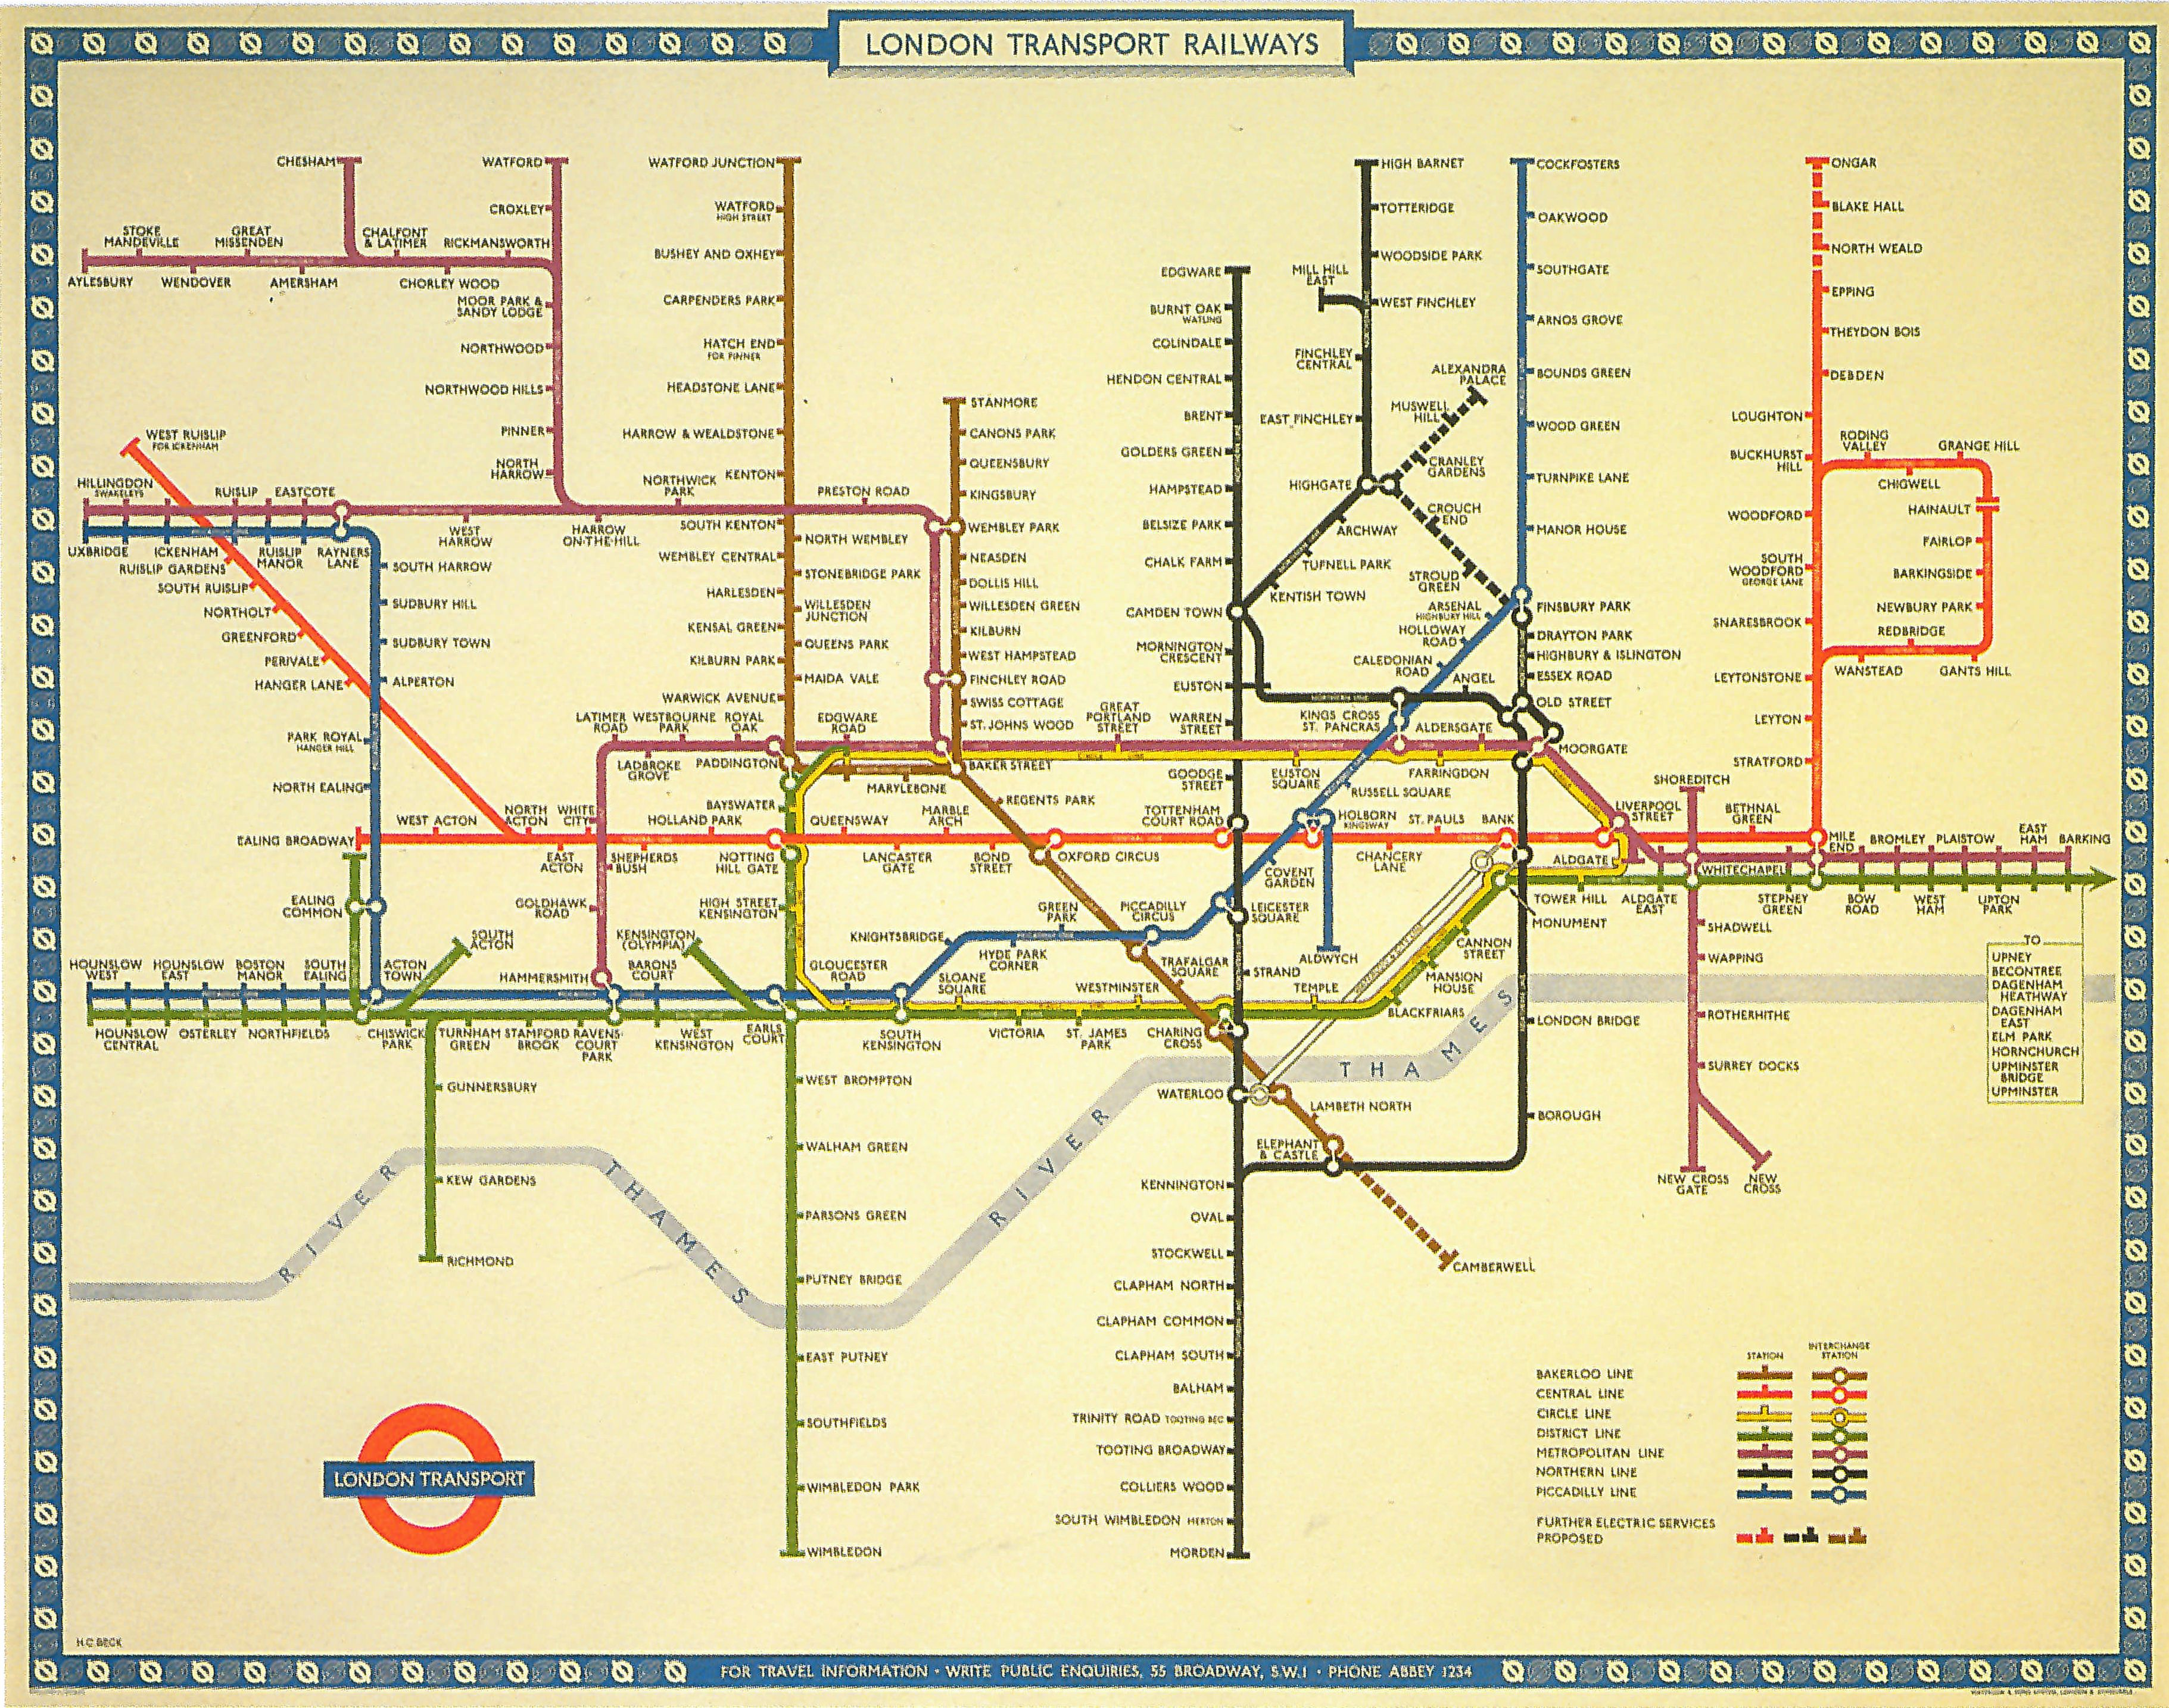 London Tube Map 1950 w proposed extension to Camberwell None of